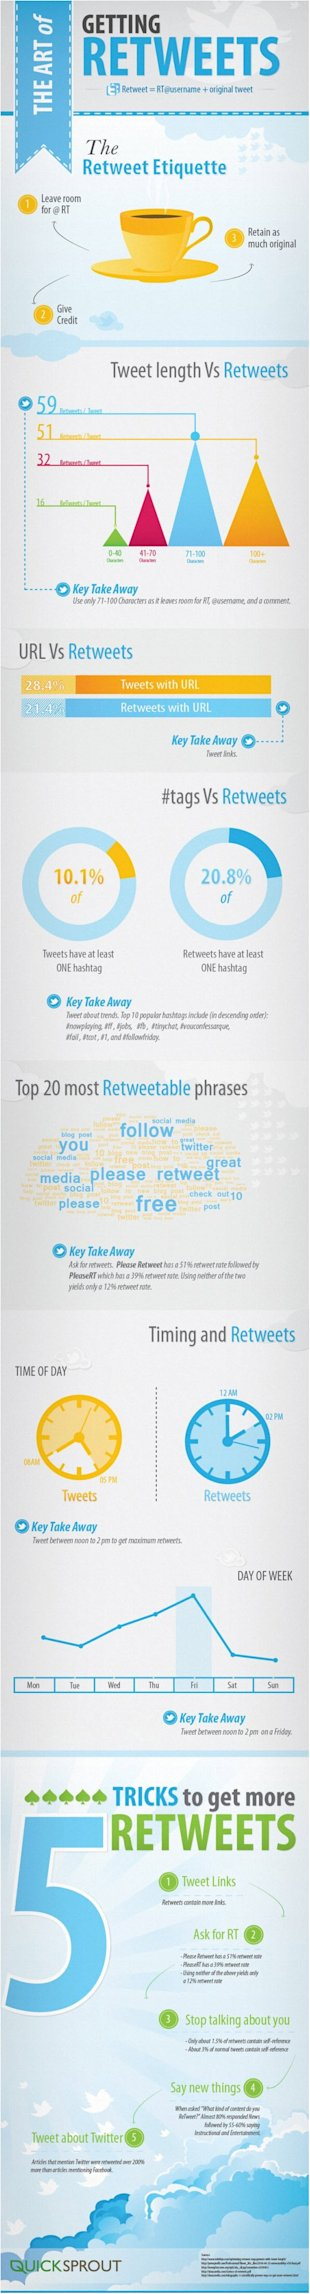 How to Get More Retweets on Twitter image How to get more retweets on Twitter1